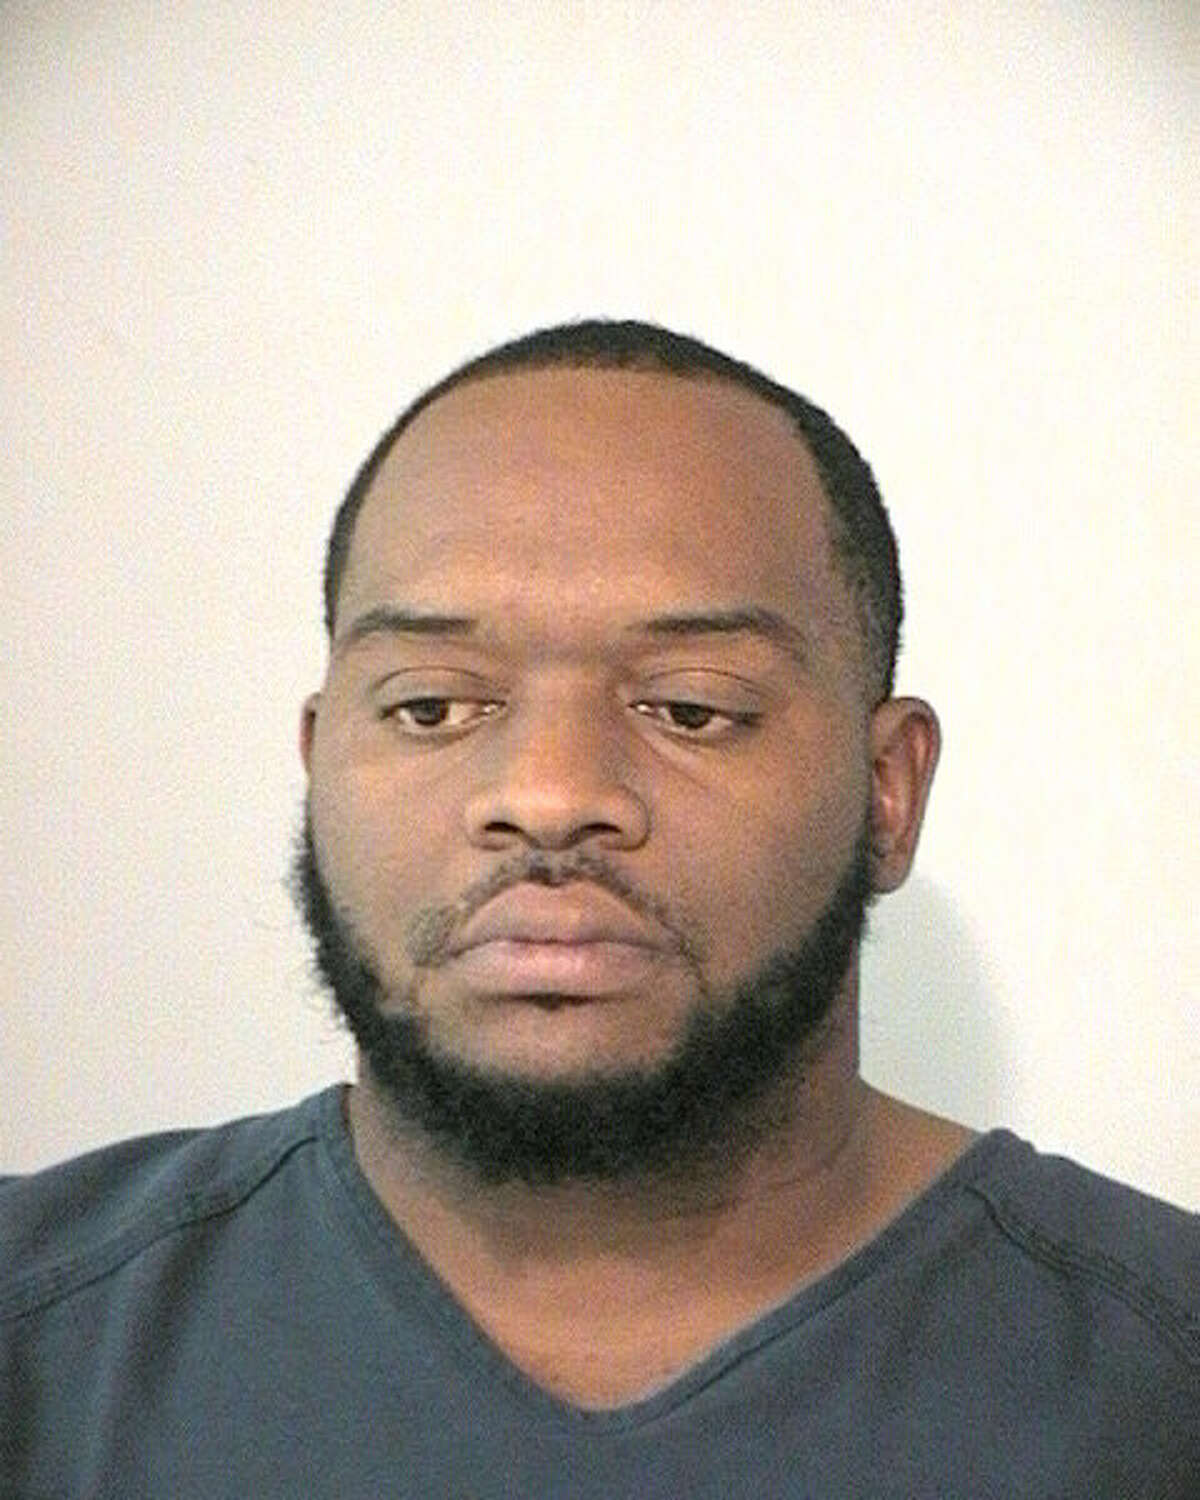 The Fort Bend County District Attorney's Office is currently investigating the death of Eugene Ethridge, 33, of Houston, inside the Fort Bend County Jail on Nov. 3, 2015.